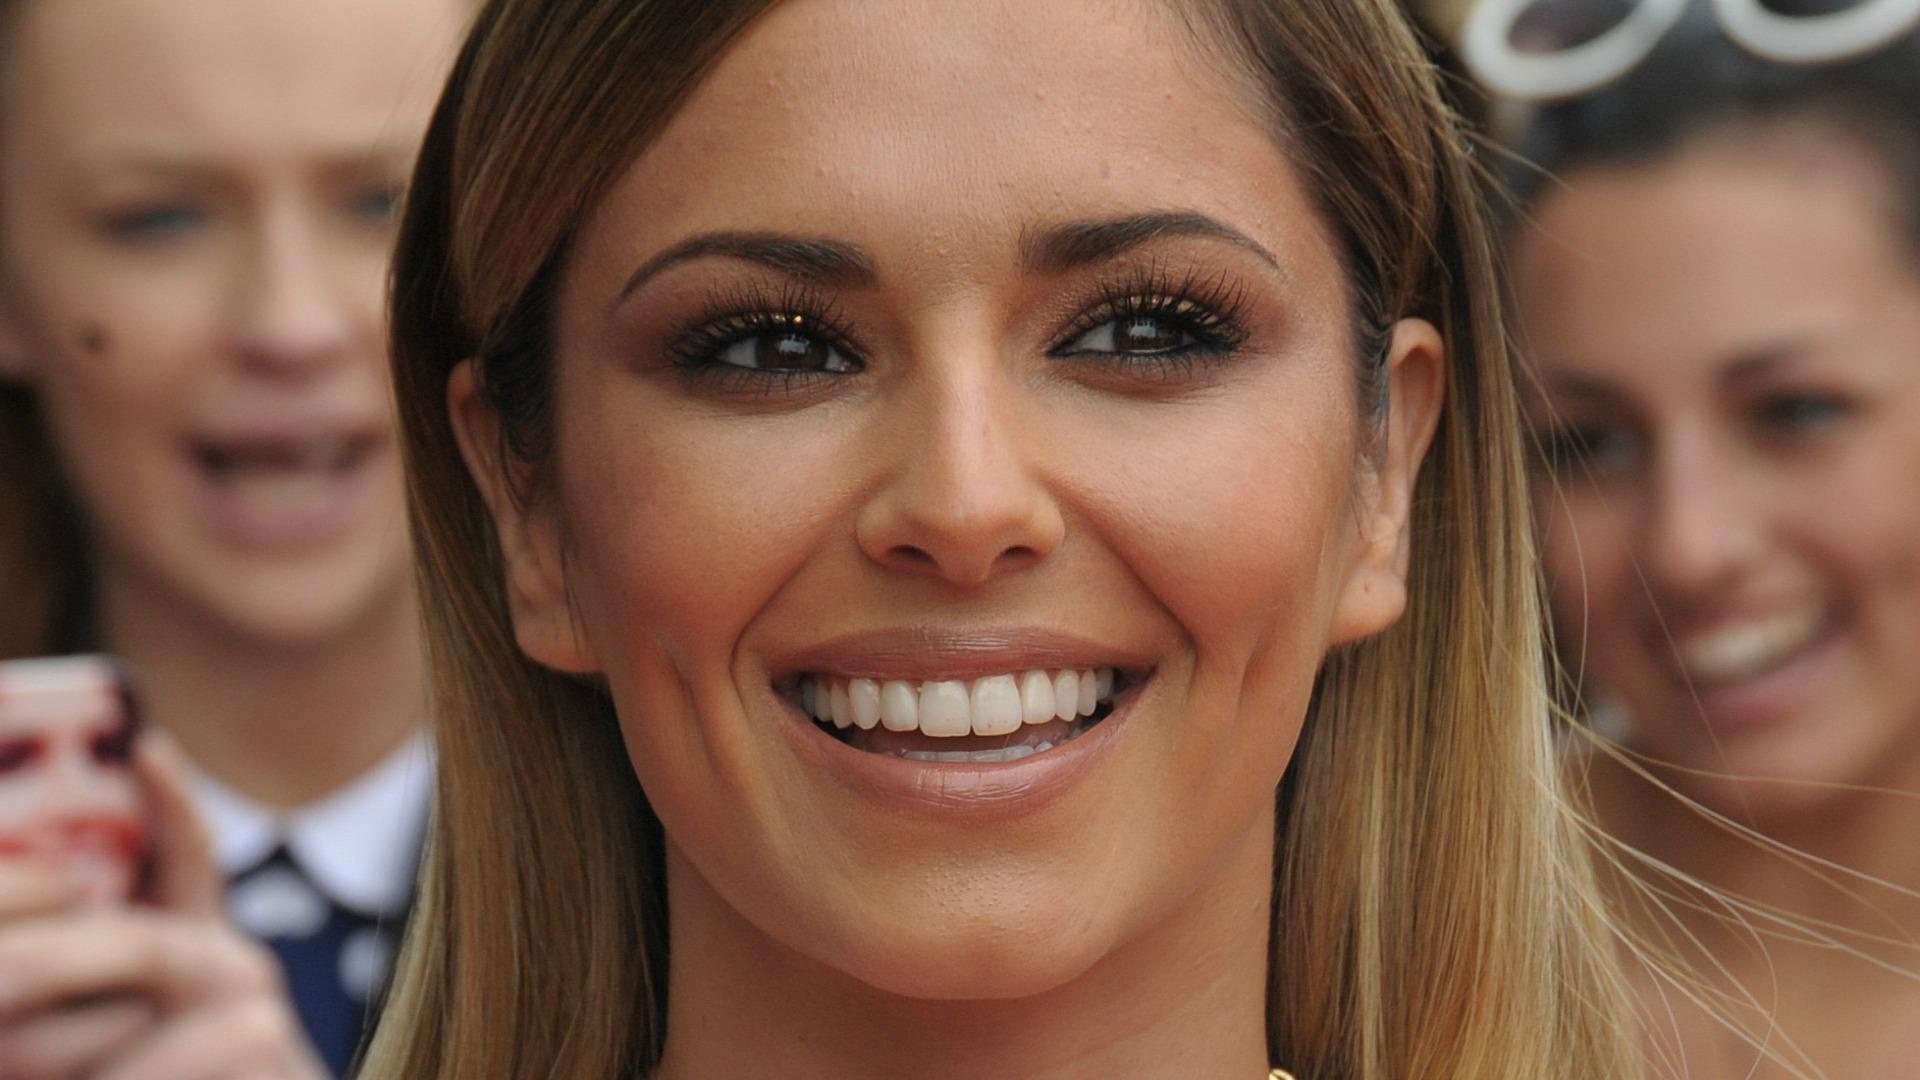 Cheryl Cole marries her French lover after only 3 months